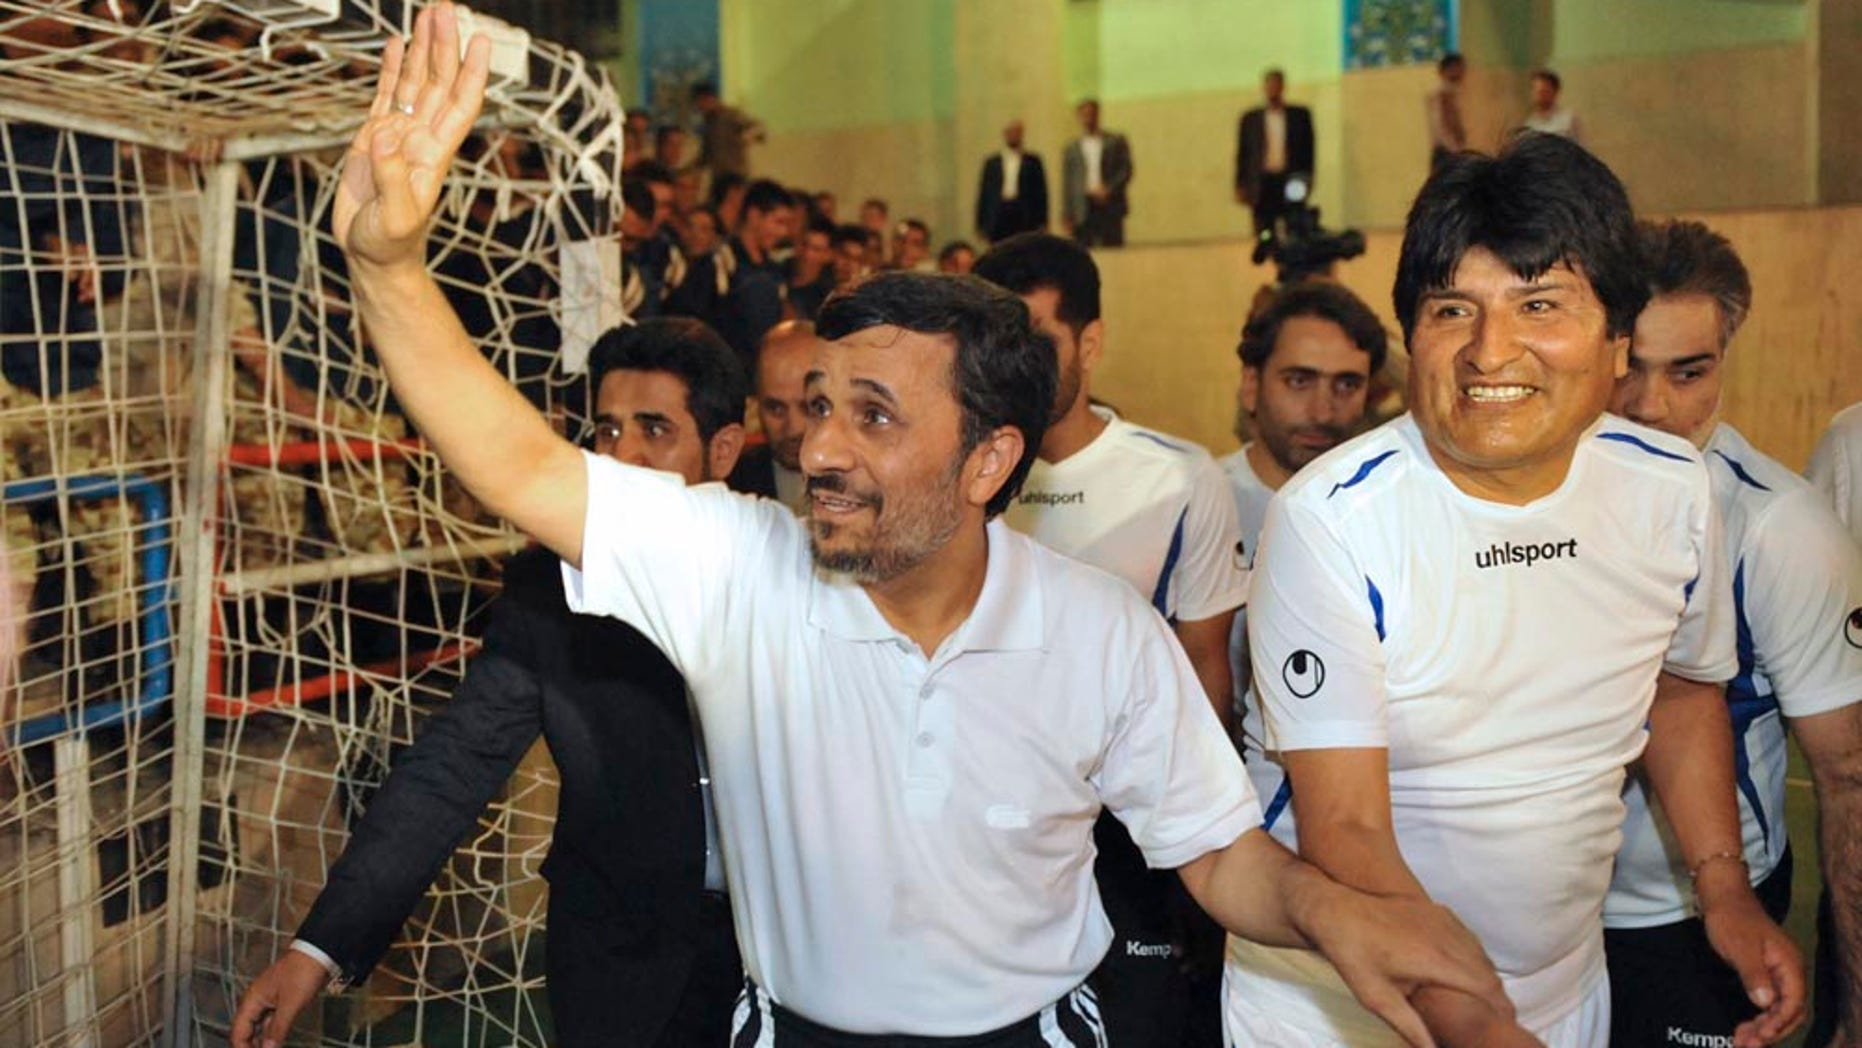 In this picture taken on Tuesday, Oct. 26, 2010, Iranian President Mahmoud Ahmadinejad, left, holds the hand of his Bolivian counterpart, Evo Morales, prior to a friendly Fursal, in Tehran, Iran. (AP Photo/ISNA, Amir Kholousi)